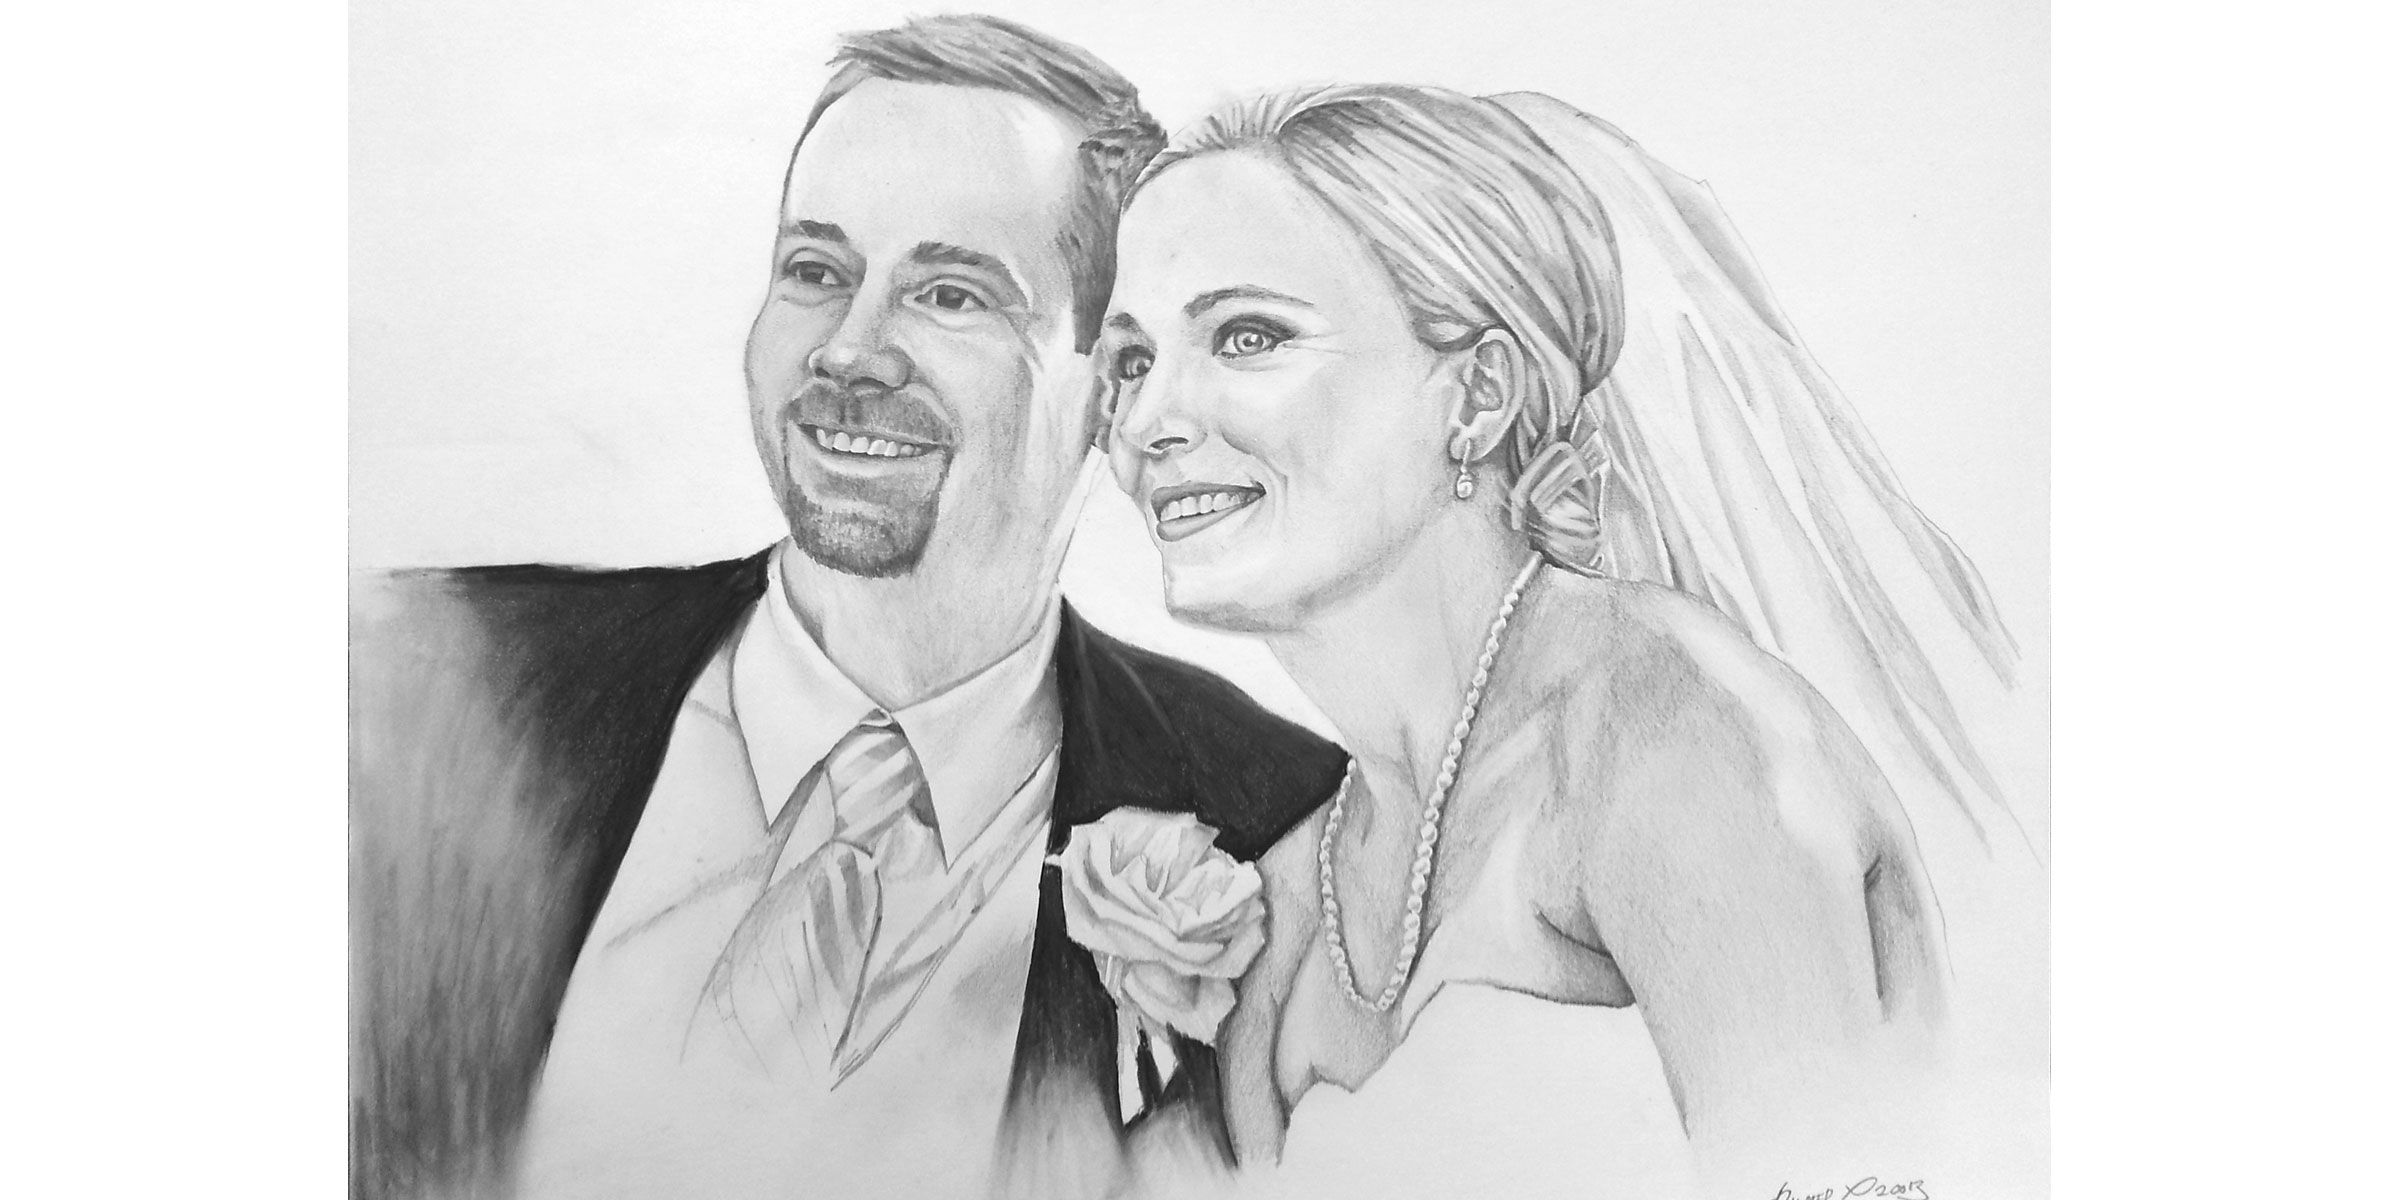 Aaron & Katie - Black and White Drawing by Daniel C. Palmer